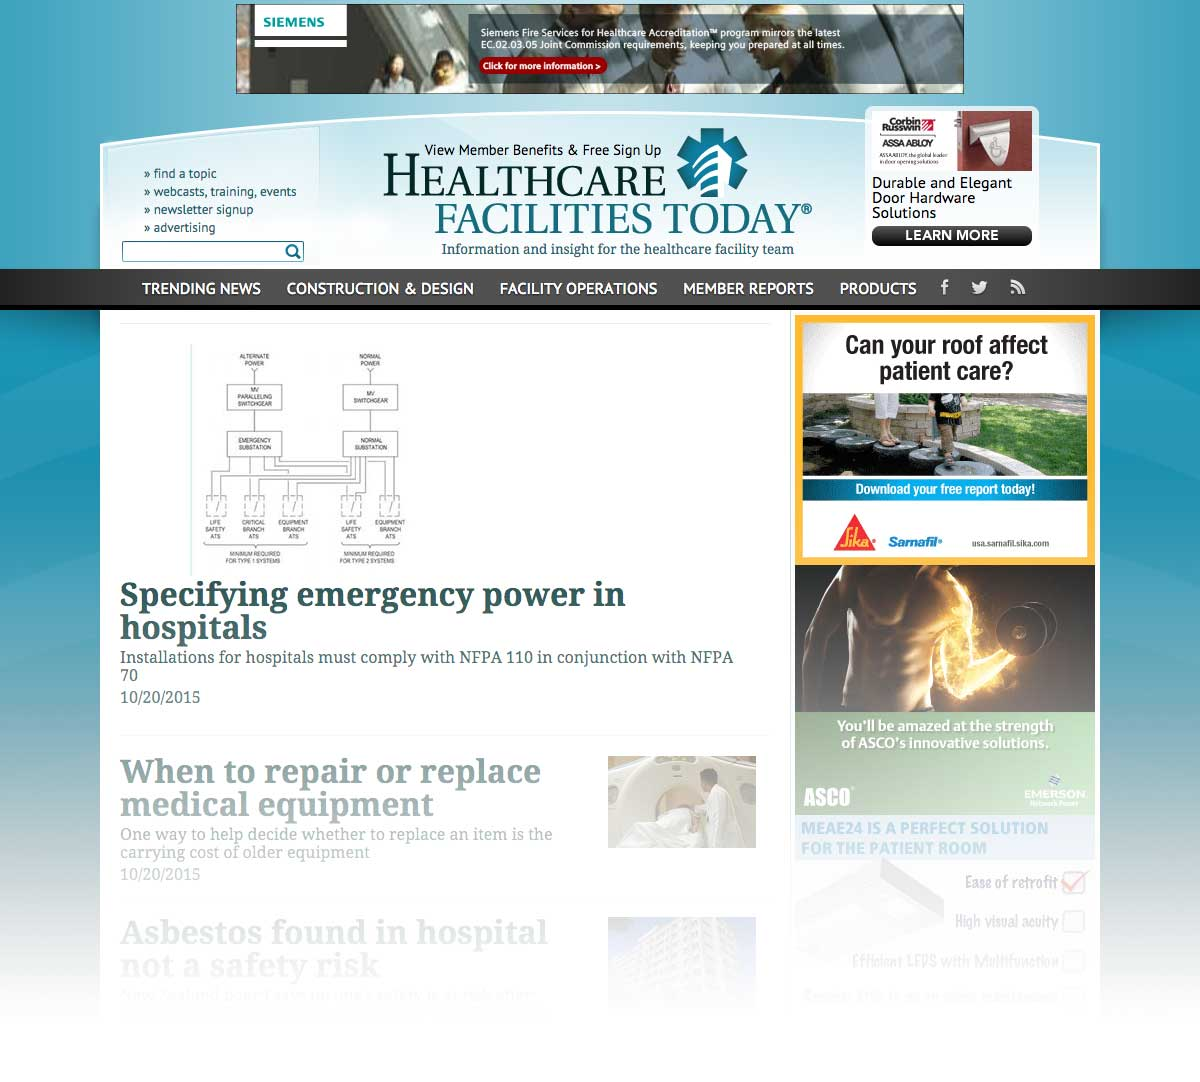 Healthcare Facilities Today Ultra Ad Sample